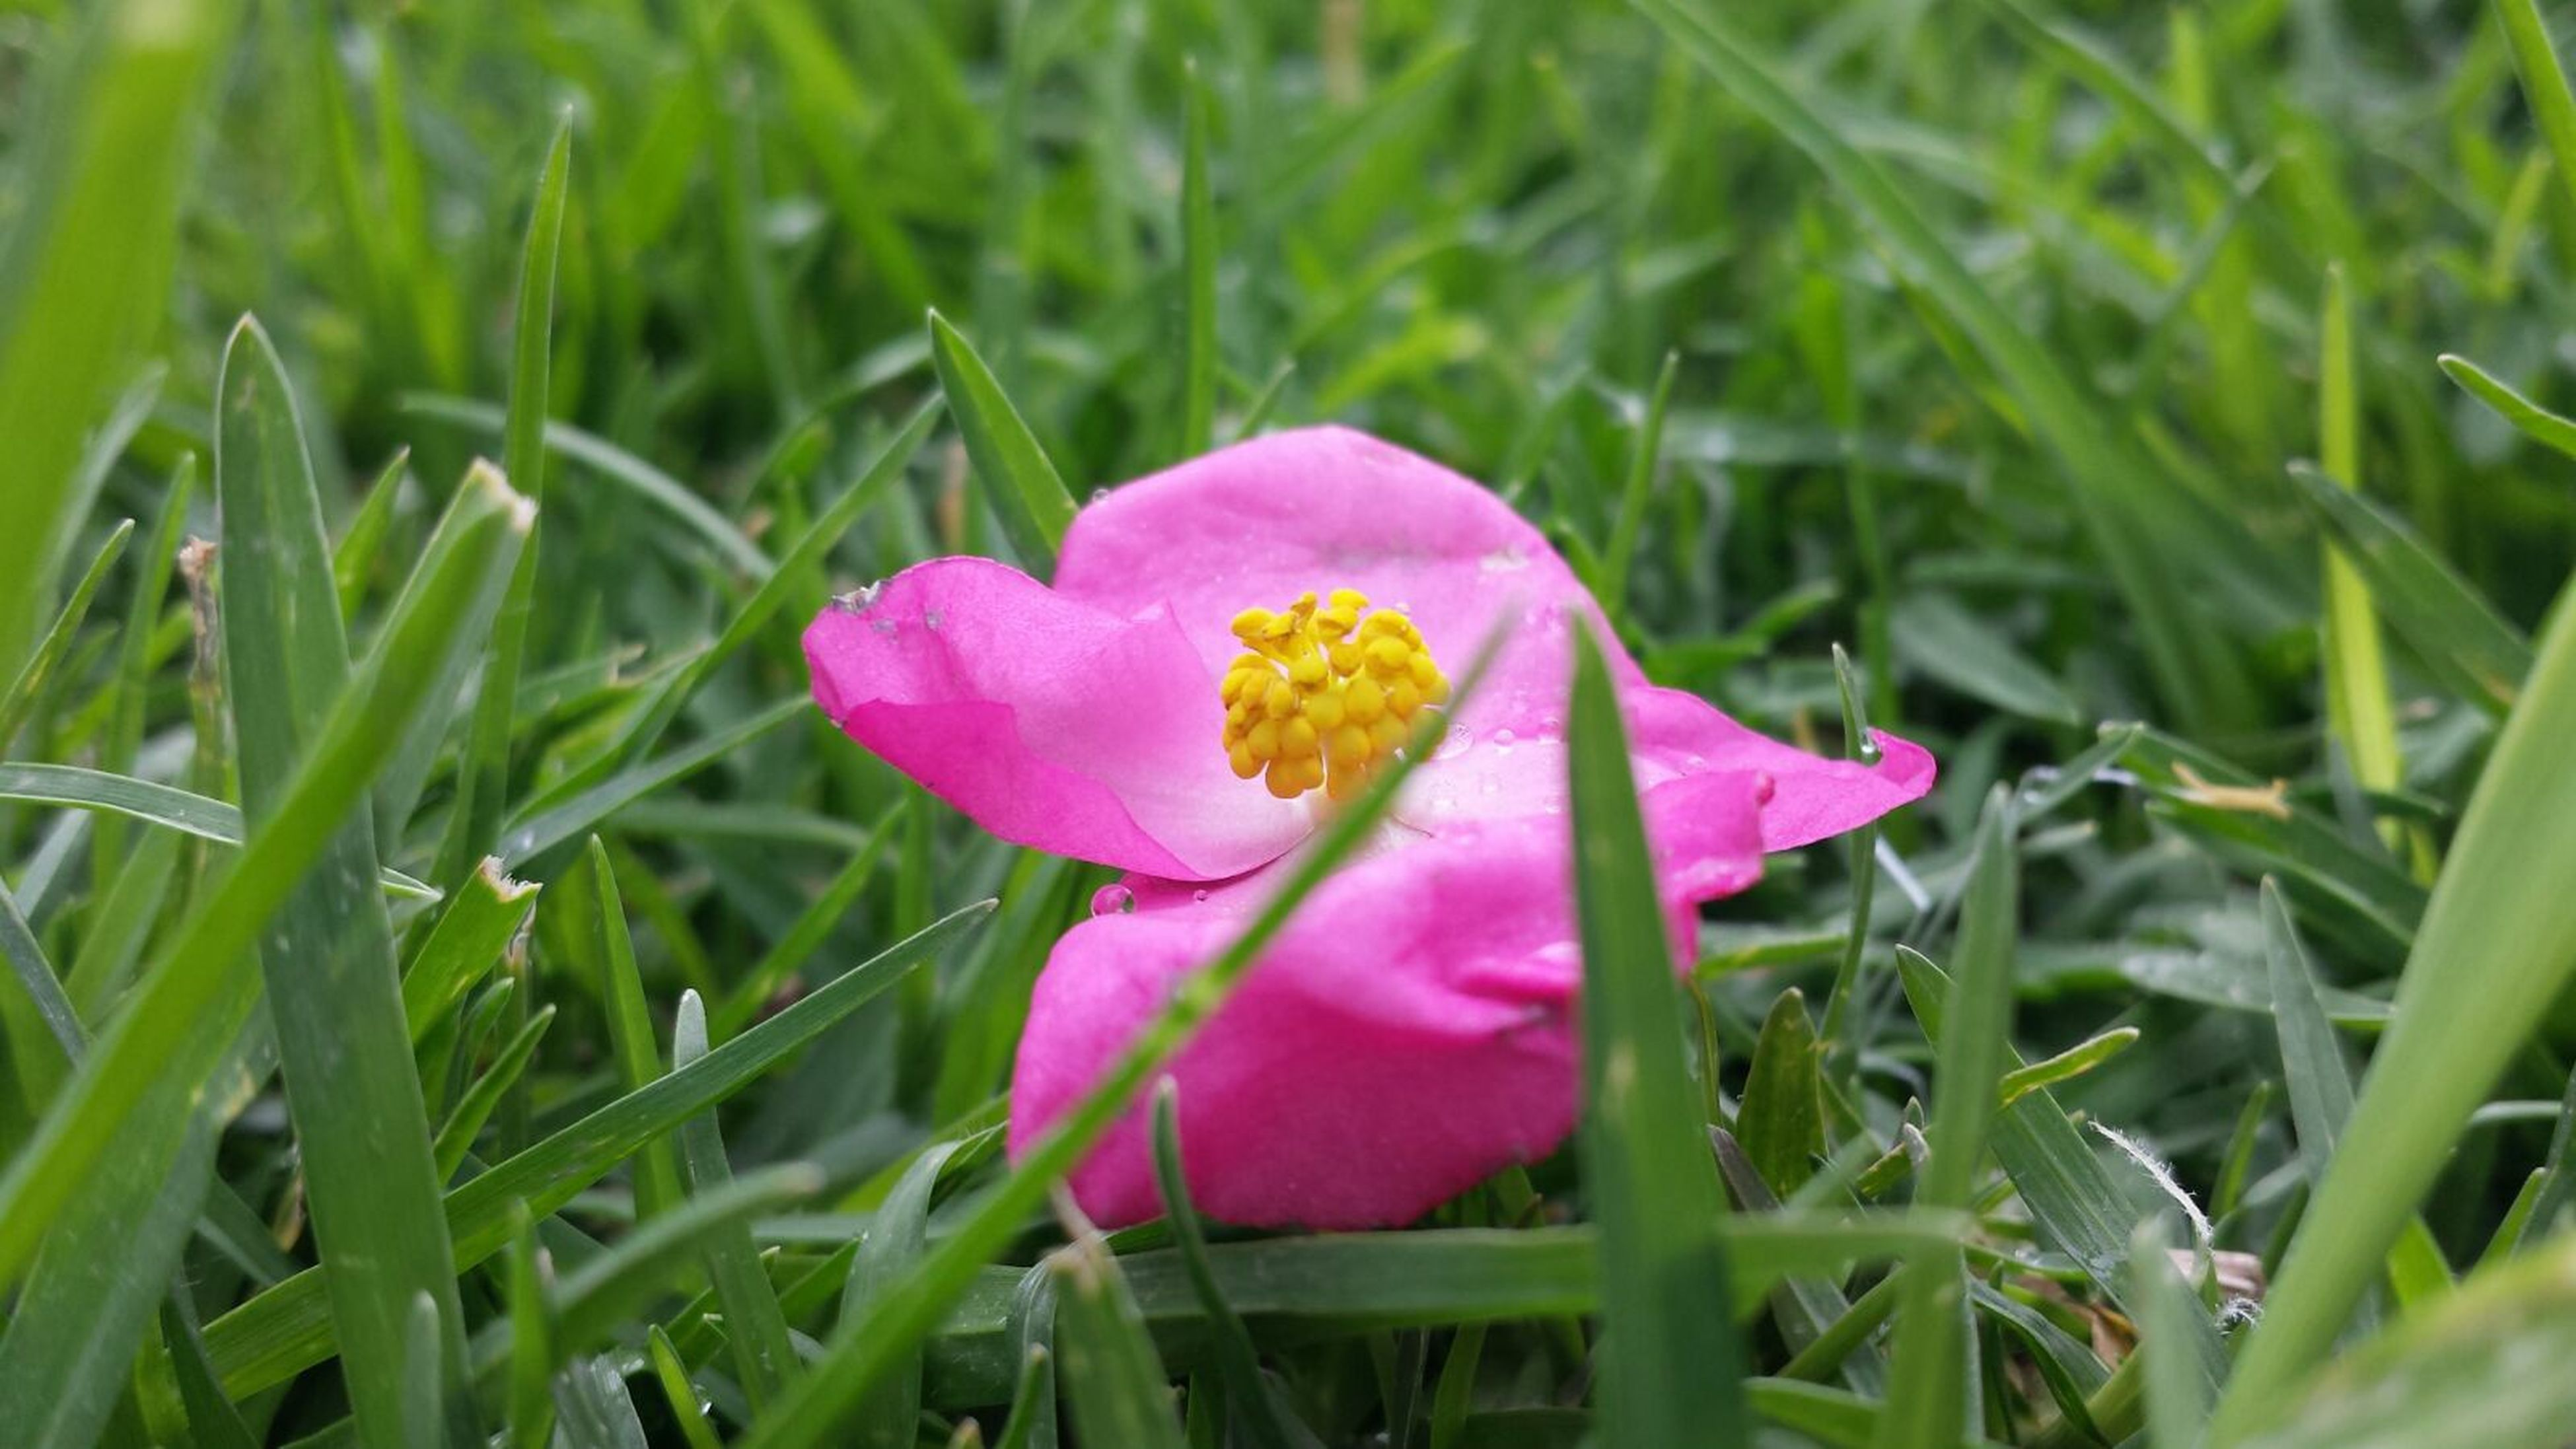 flower, freshness, petal, fragility, flower head, pink color, growth, single flower, beauty in nature, blooming, plant, nature, close-up, field, focus on foreground, grass, green color, pink, in bloom, purple